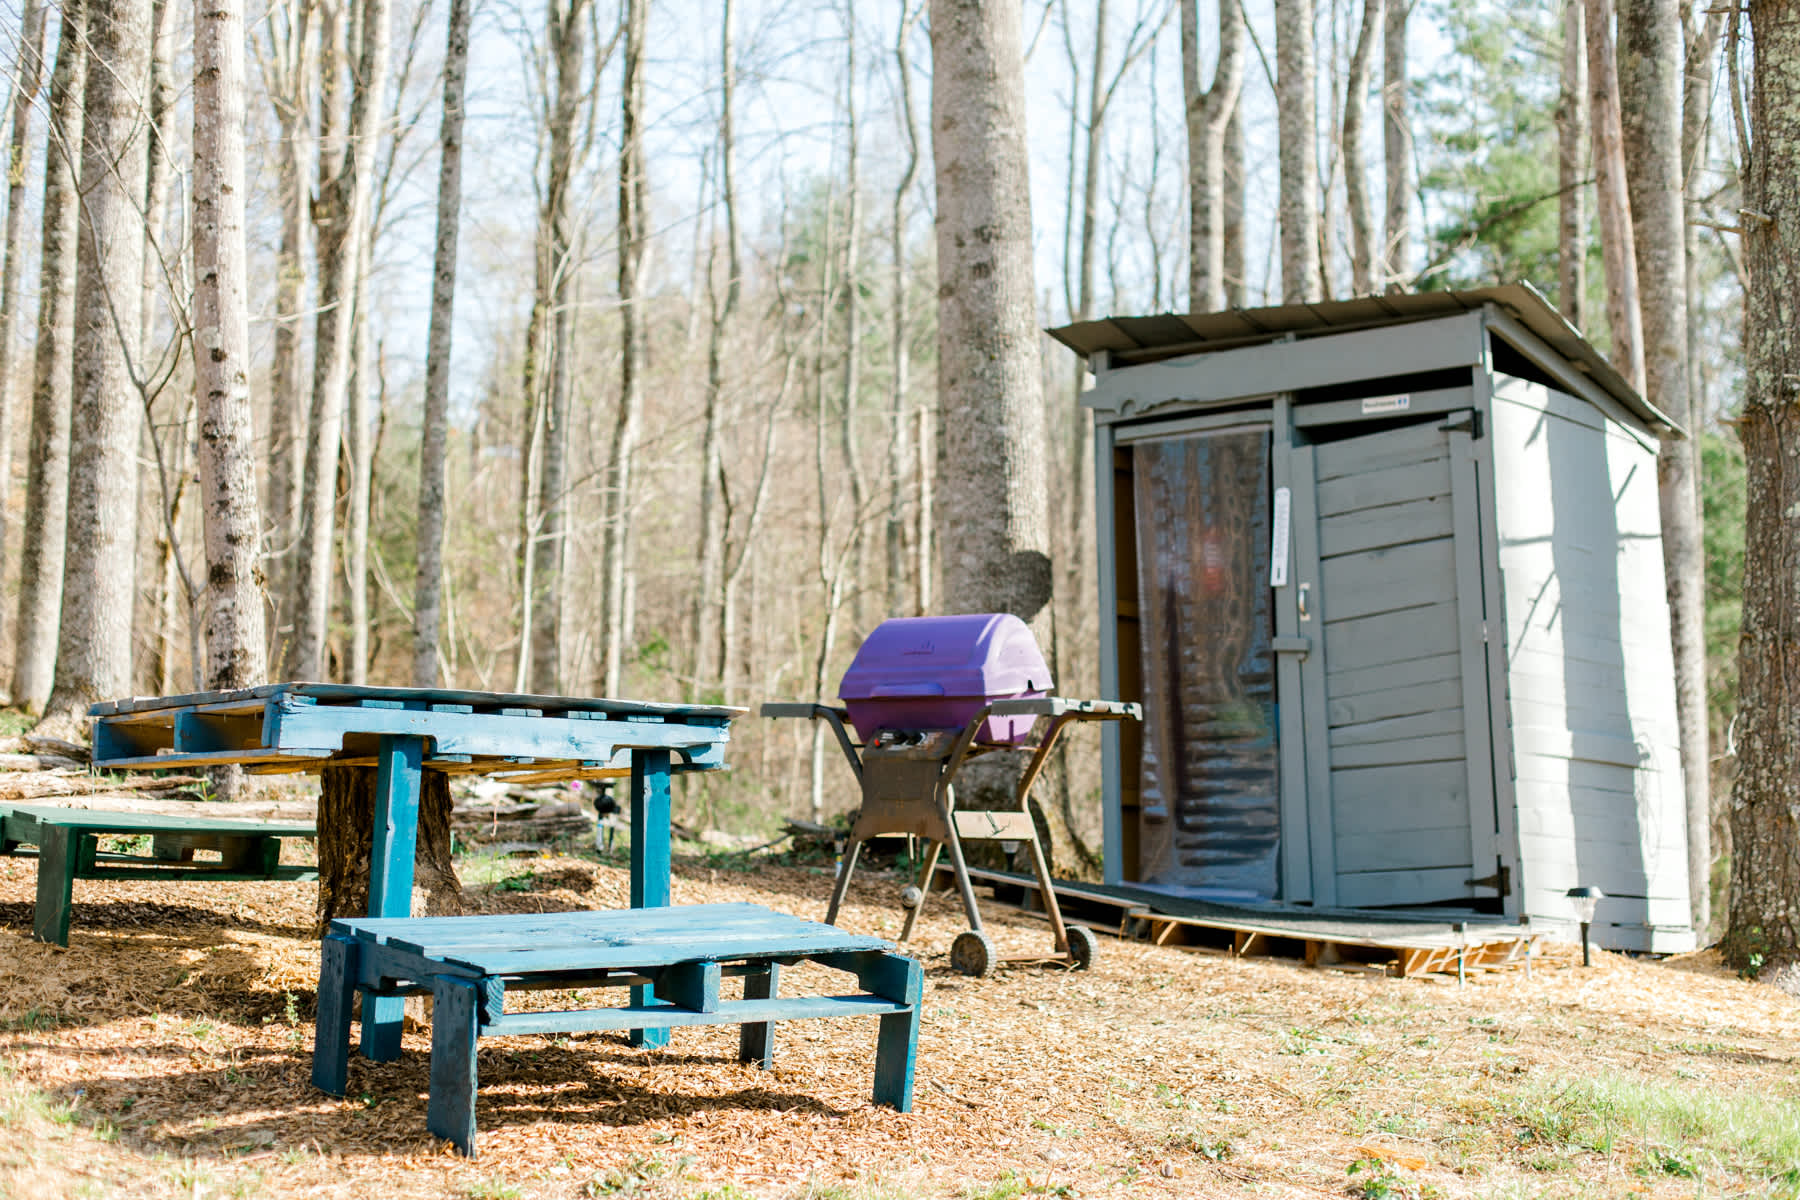 9 Diy Ideas To Repurpose Old Wooden Pallets Hipcamp Journal Stories For Campers And Our Hosts